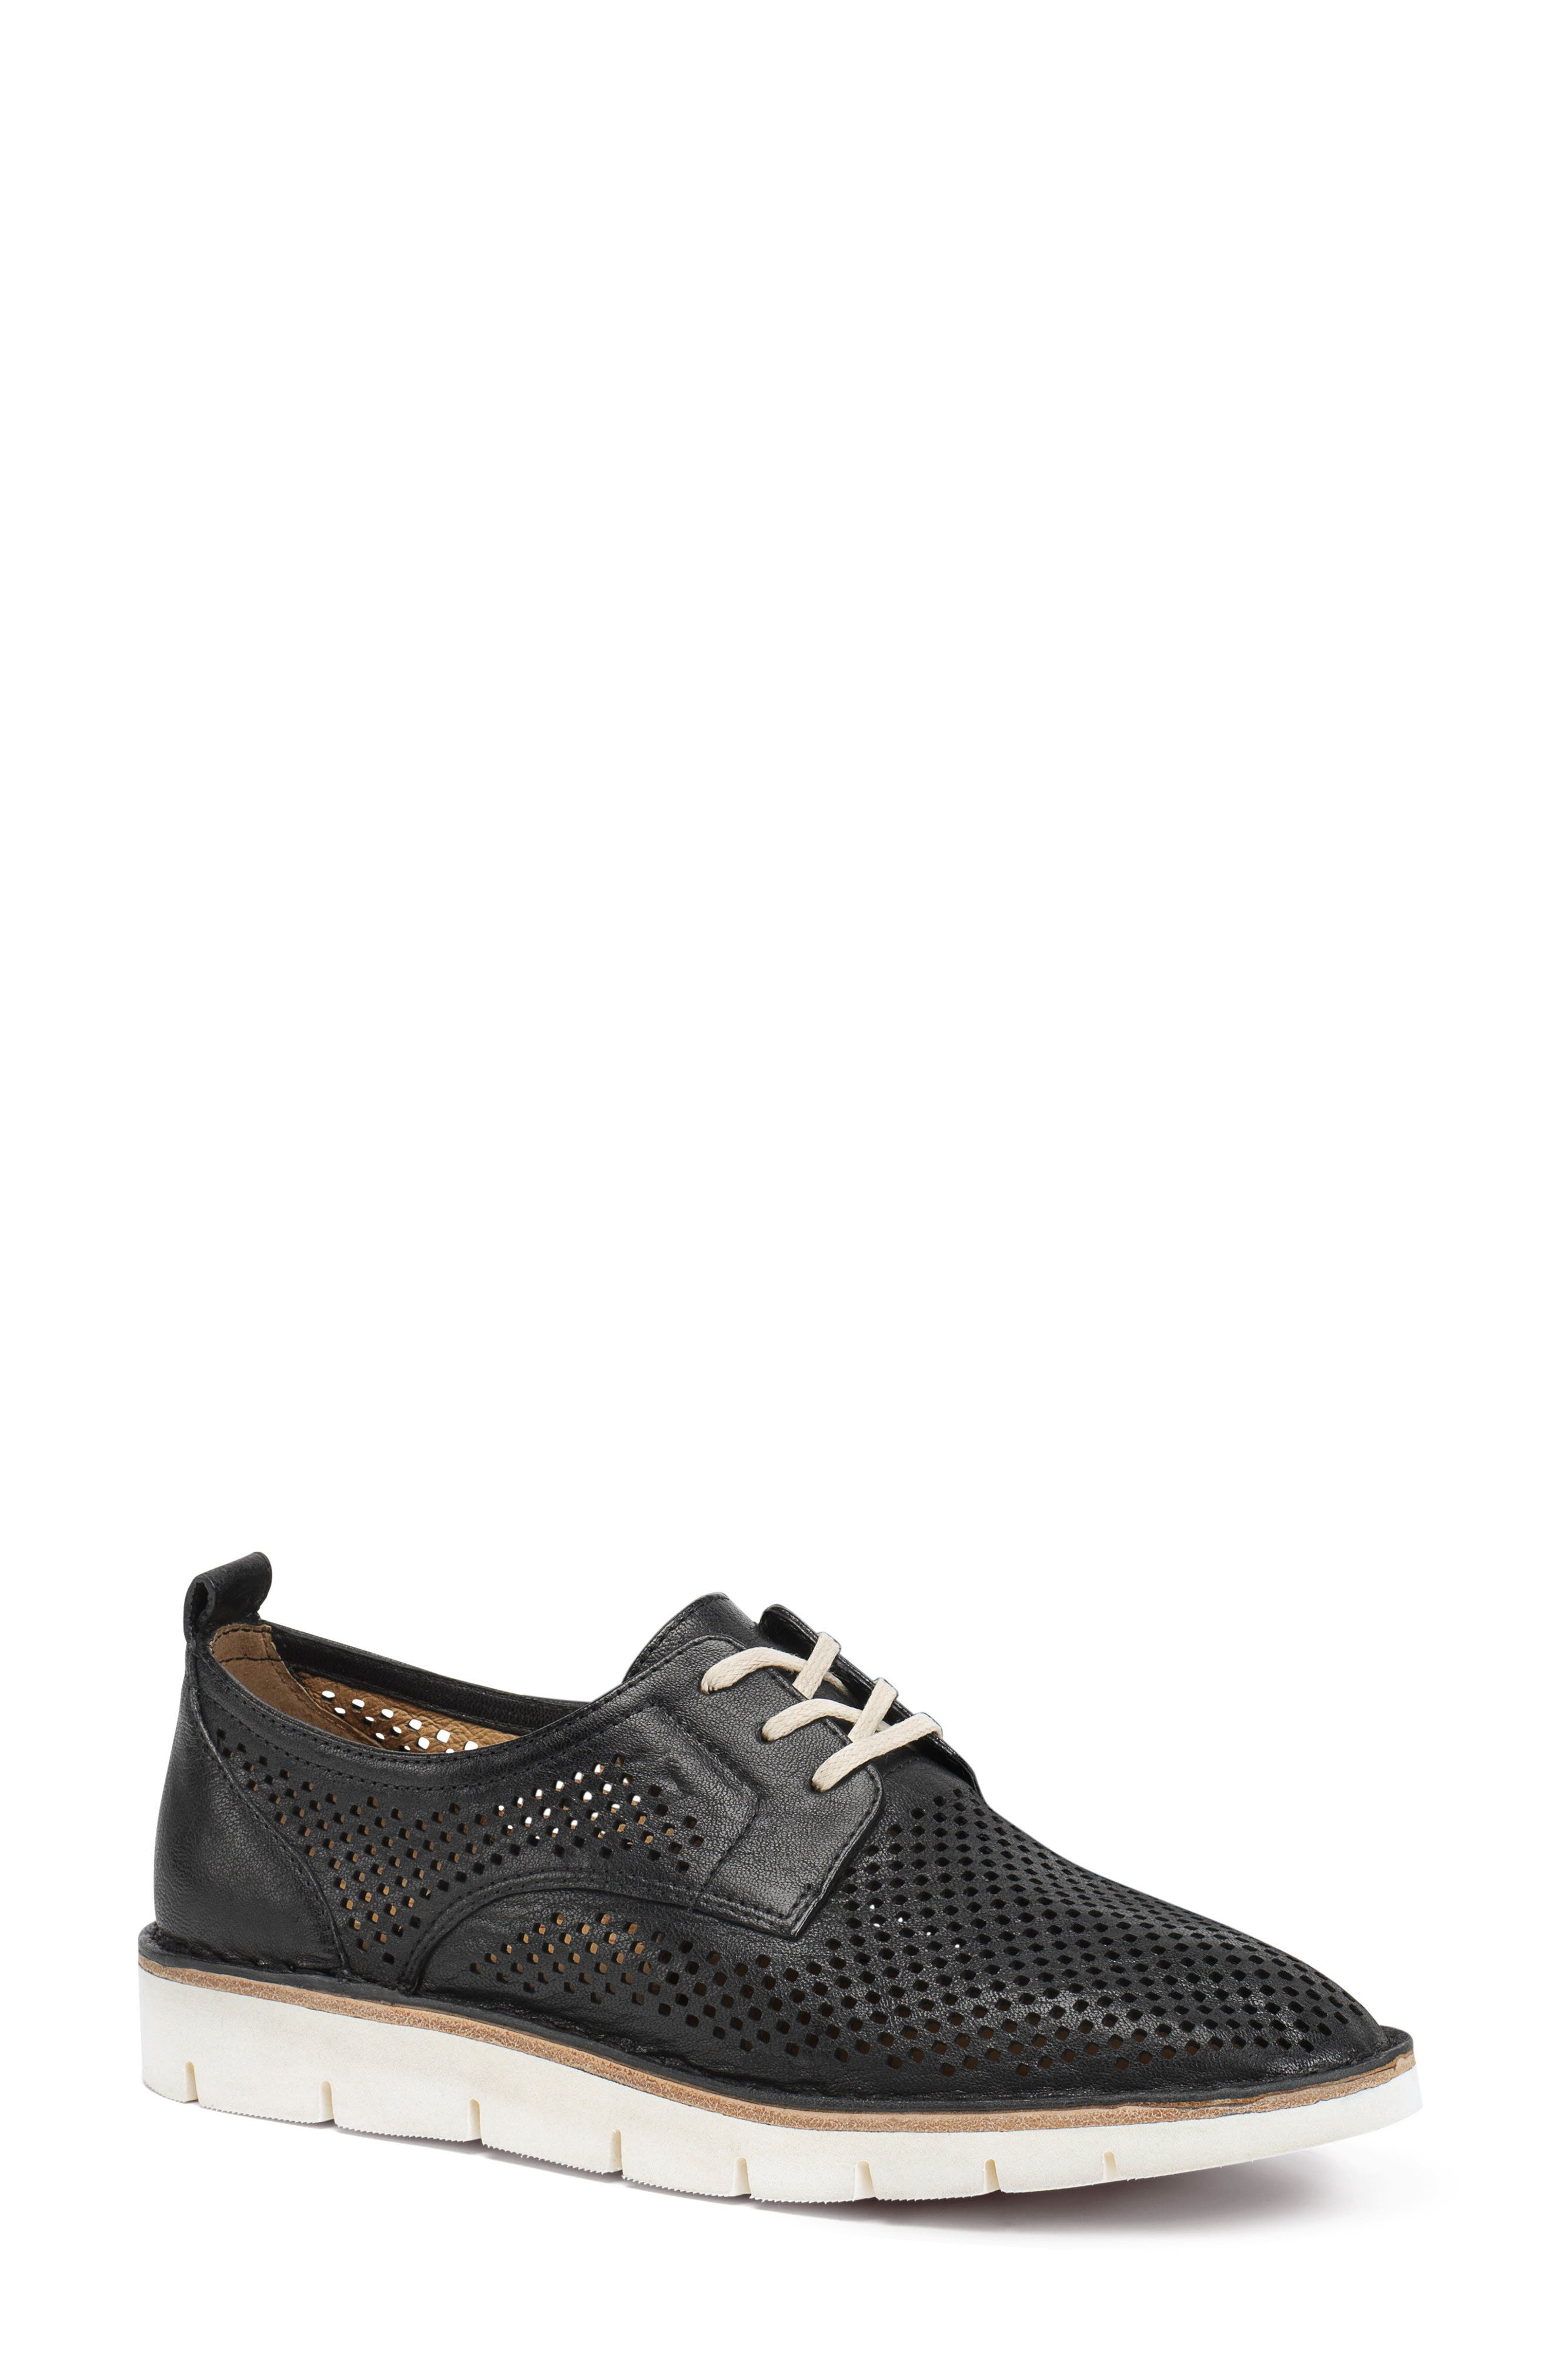 Lena Sneaker,                         Main,                         color, BLACK LEATHER